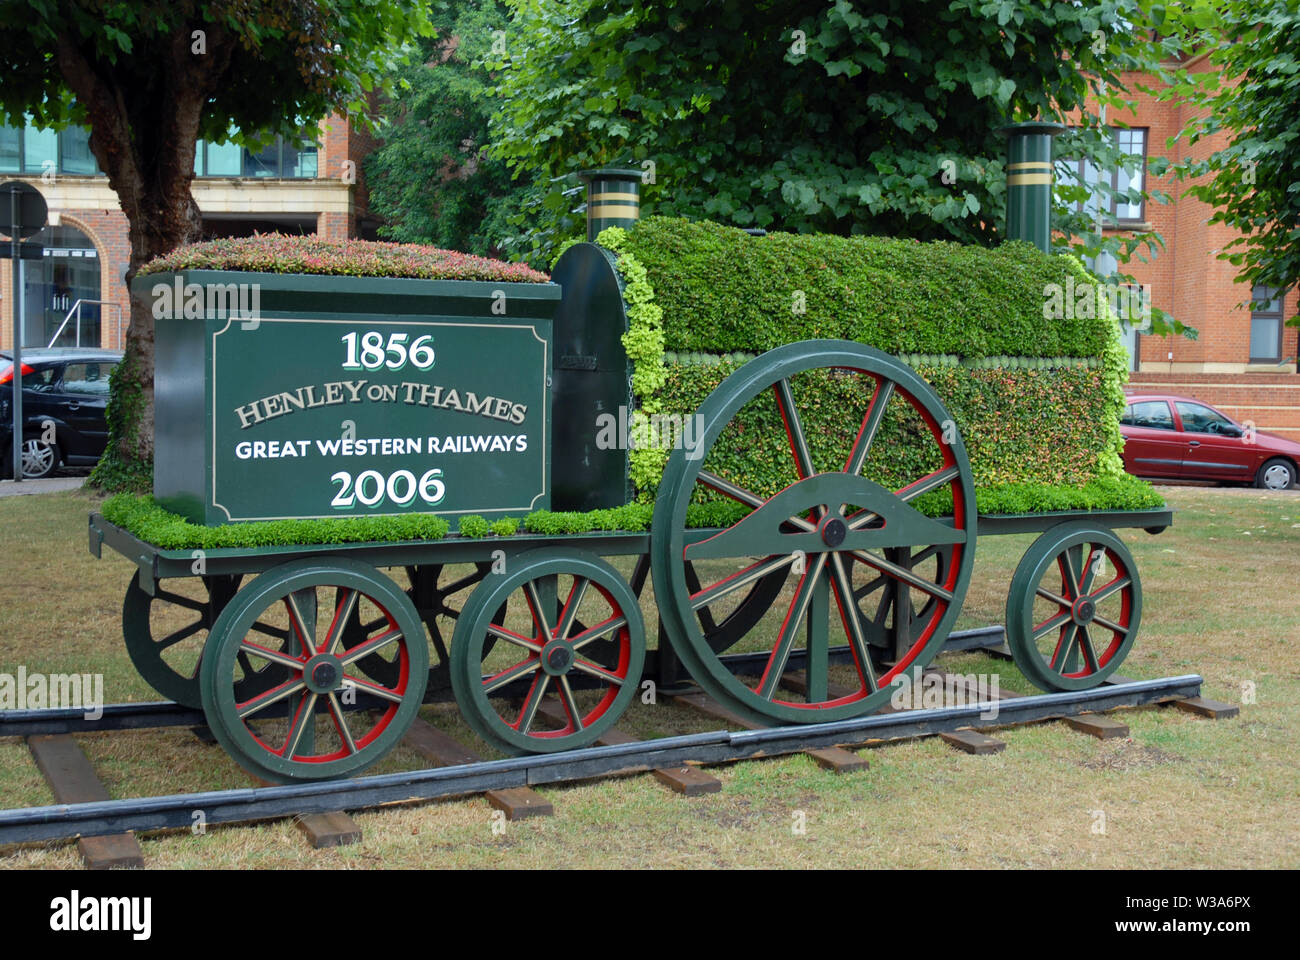 Large model of steam locomotive to celebrate 150 years of the Great Western Railway, Henley-on-Thames, Oxfordshire - Stock Image